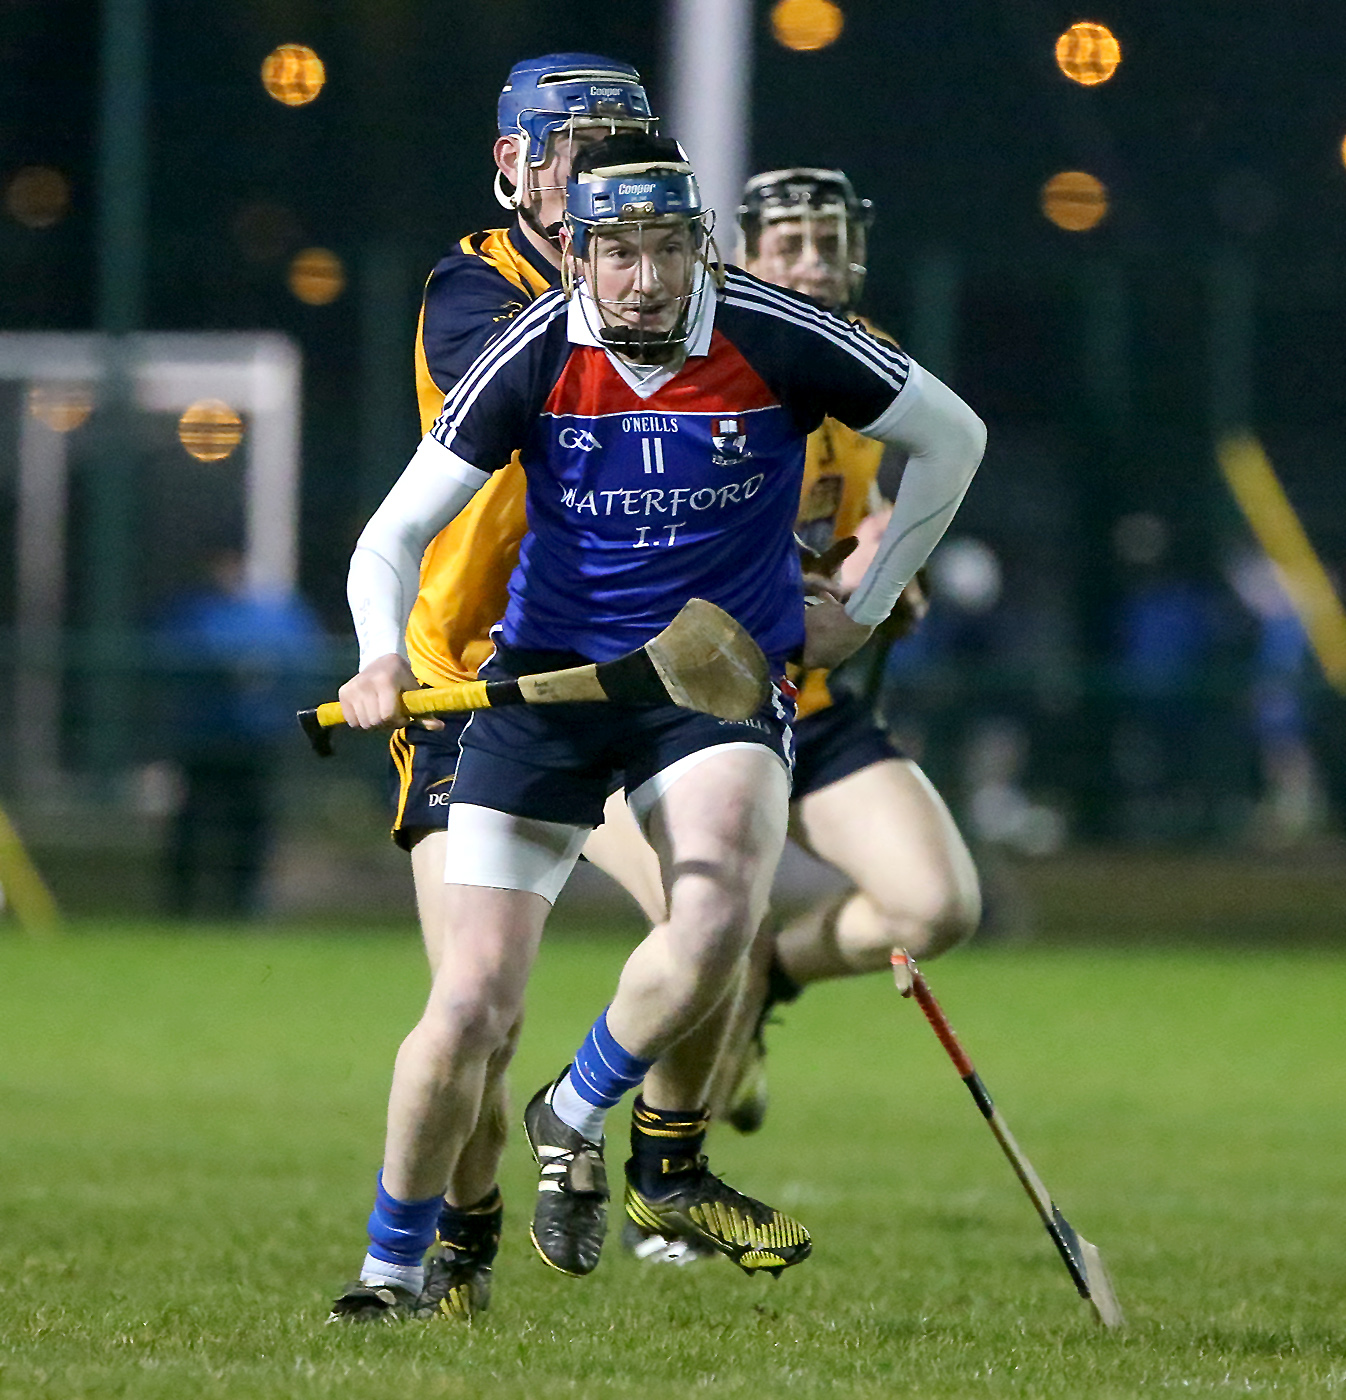 Austin Gleeson, WIT and Waterford Senior Hurling Team